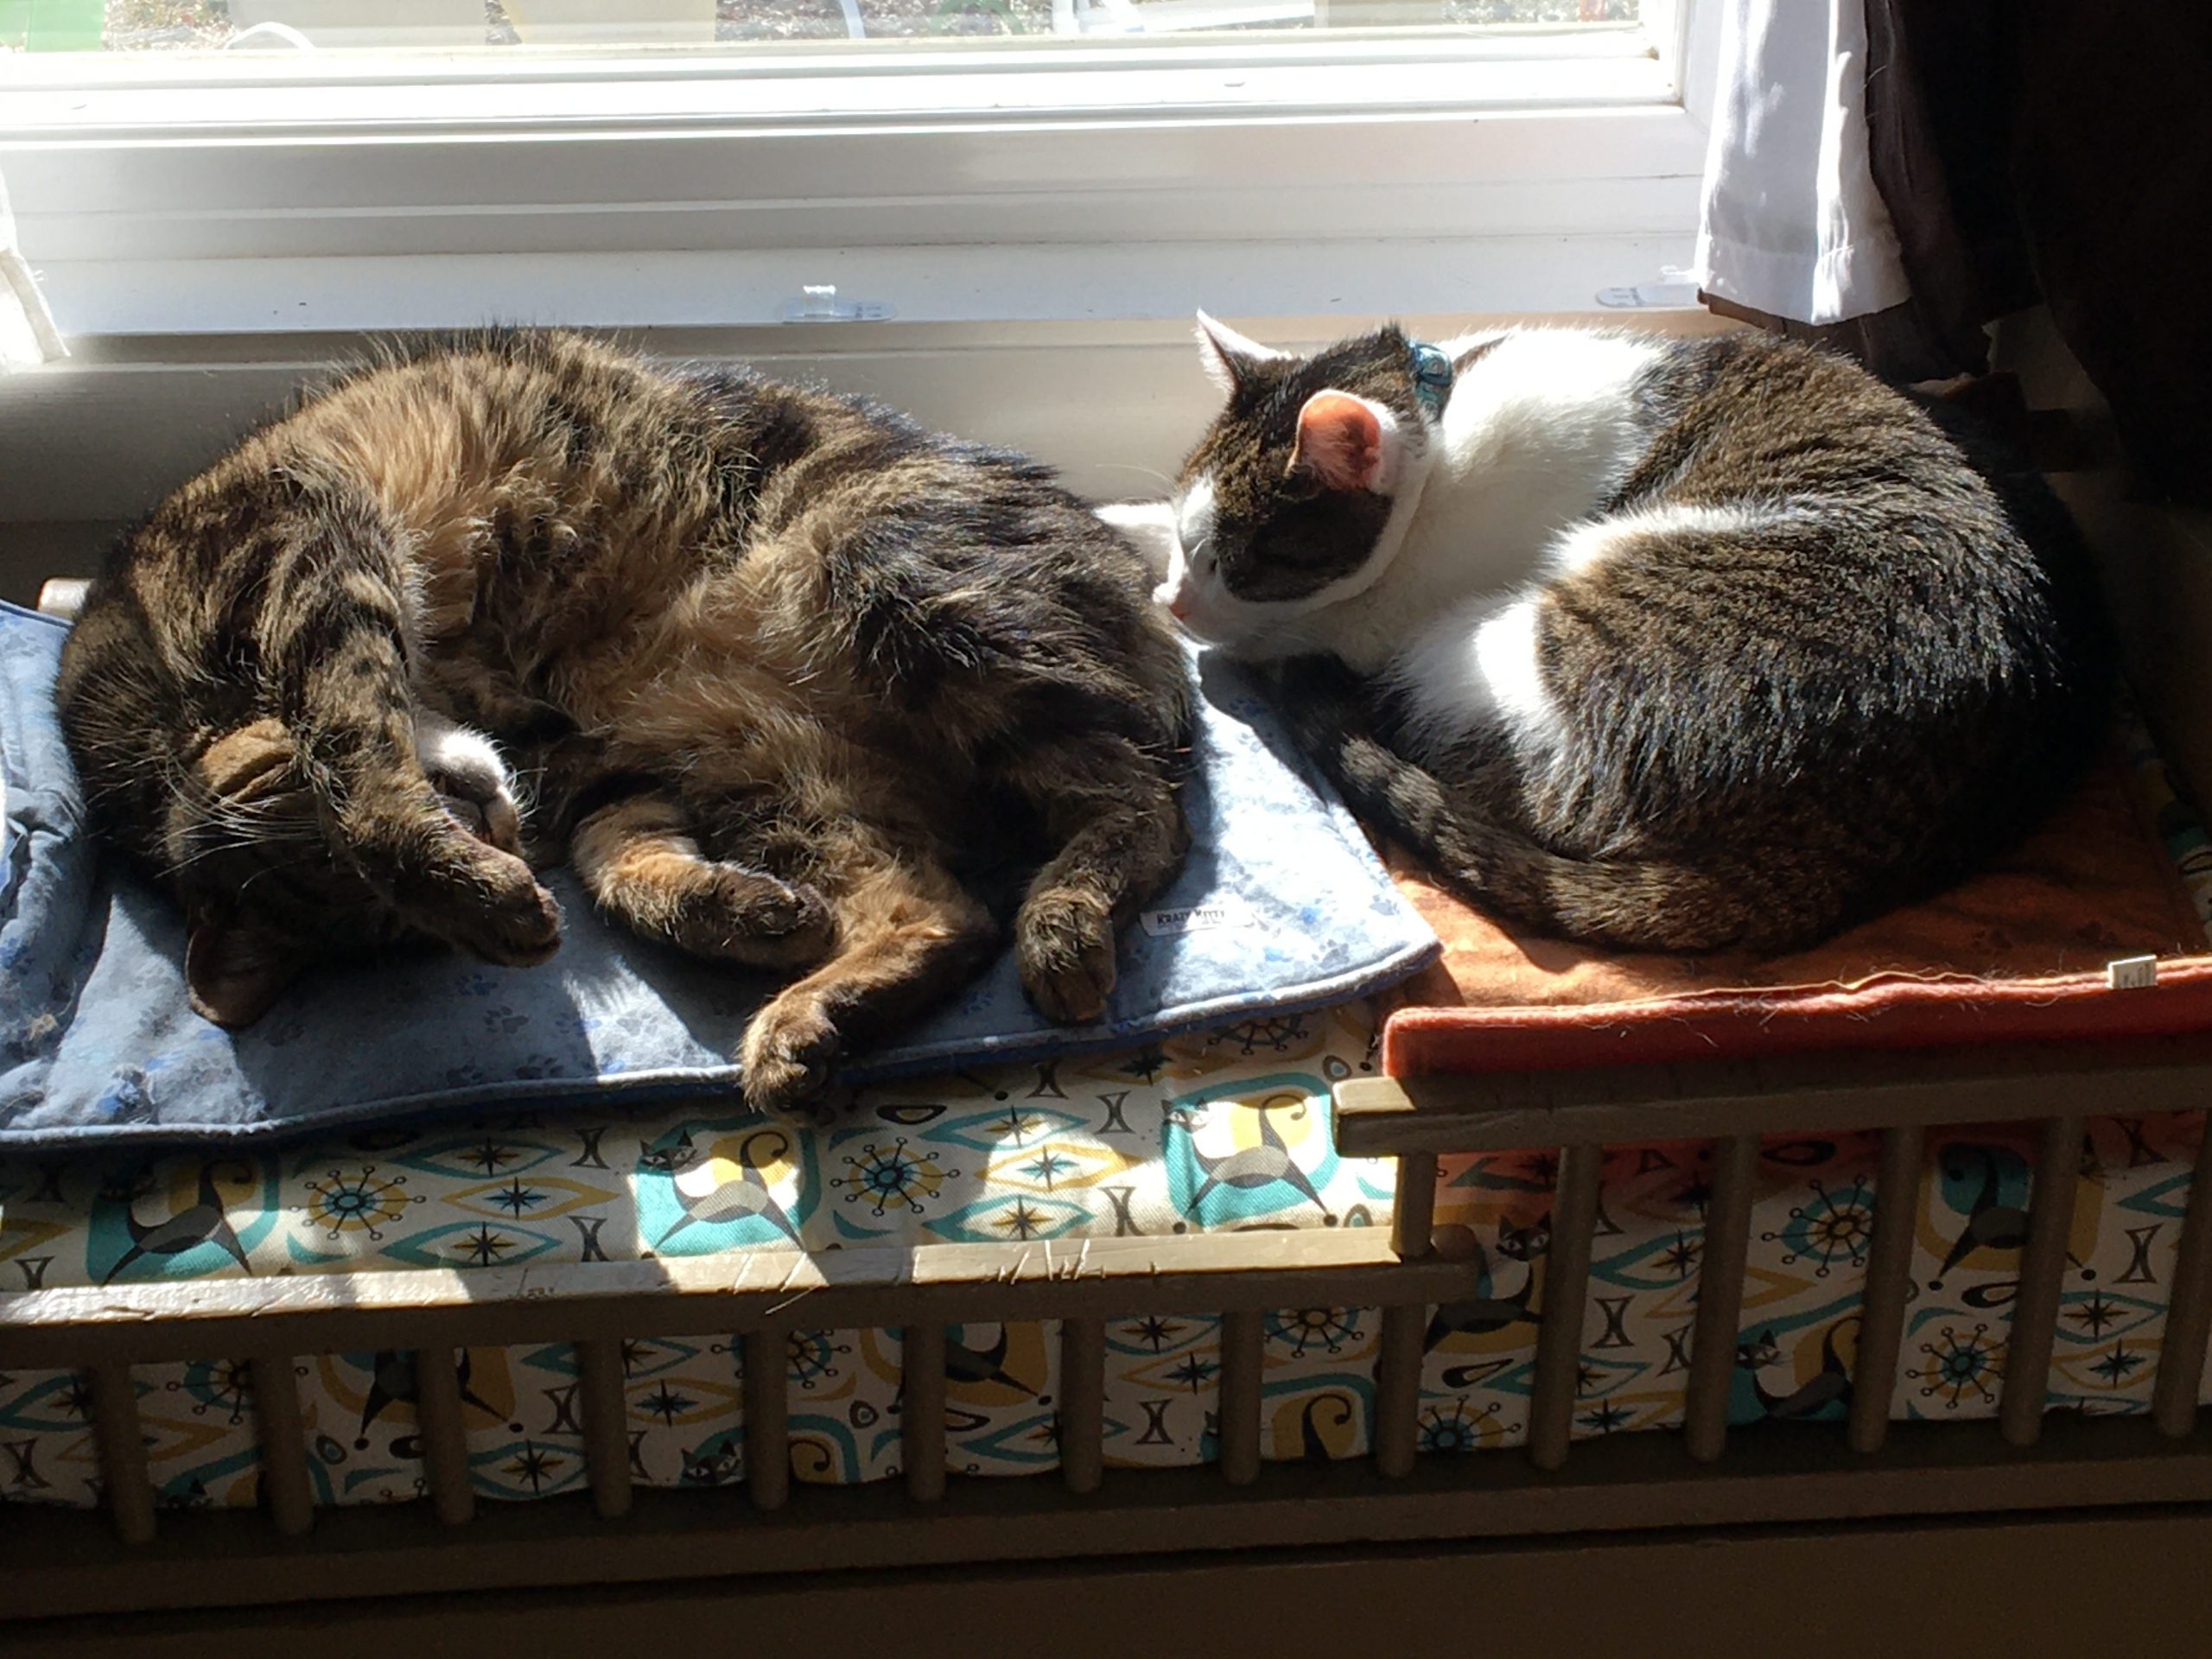 Two cats sleeping in the sun.